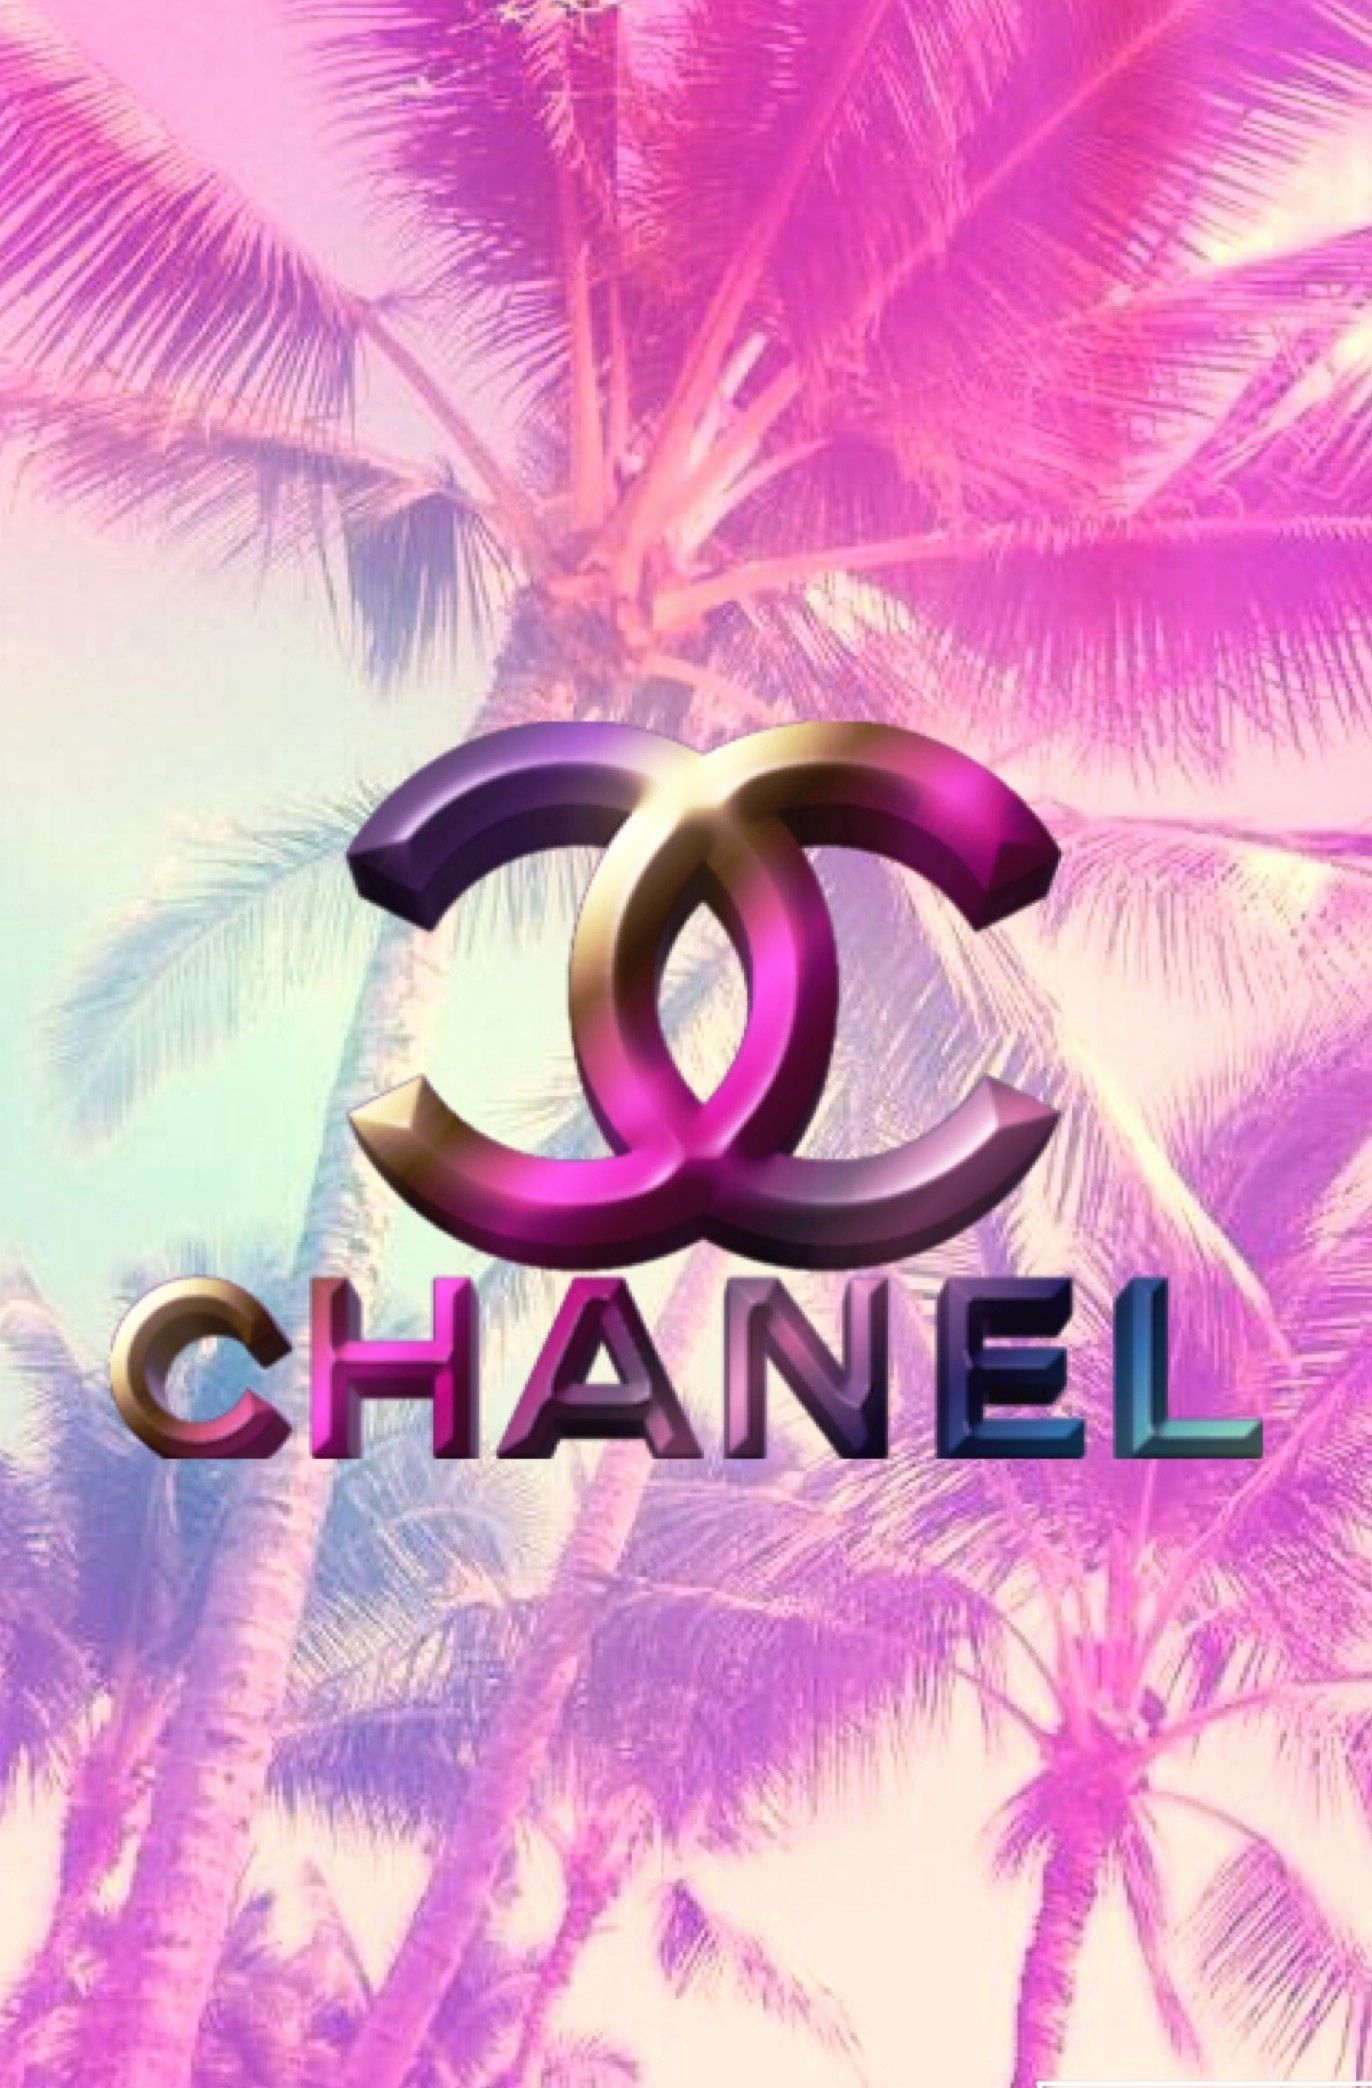 Chanel Wallpaper Luxury Chanel Wallpapers Hd 70 Images シャネル